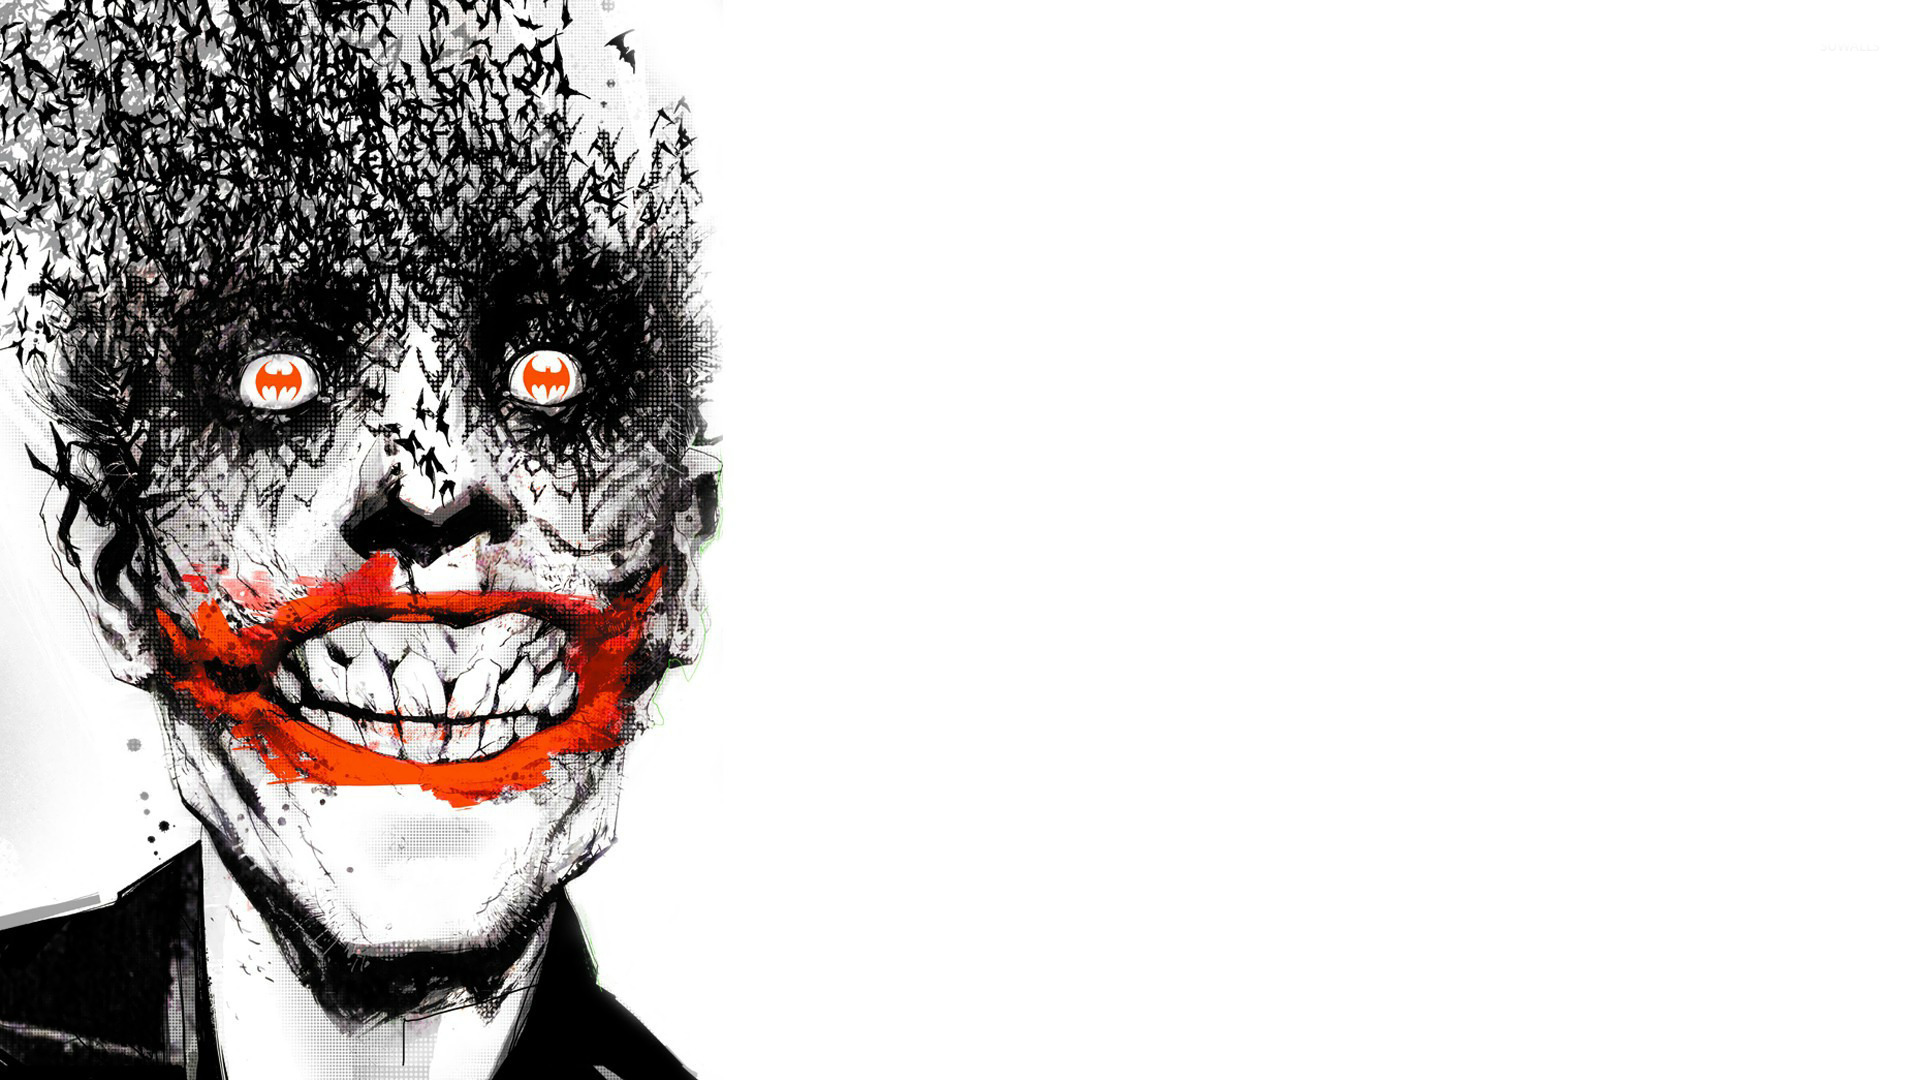 Batface Joker wallpaper   Comic wallpapers   16139 1366x768